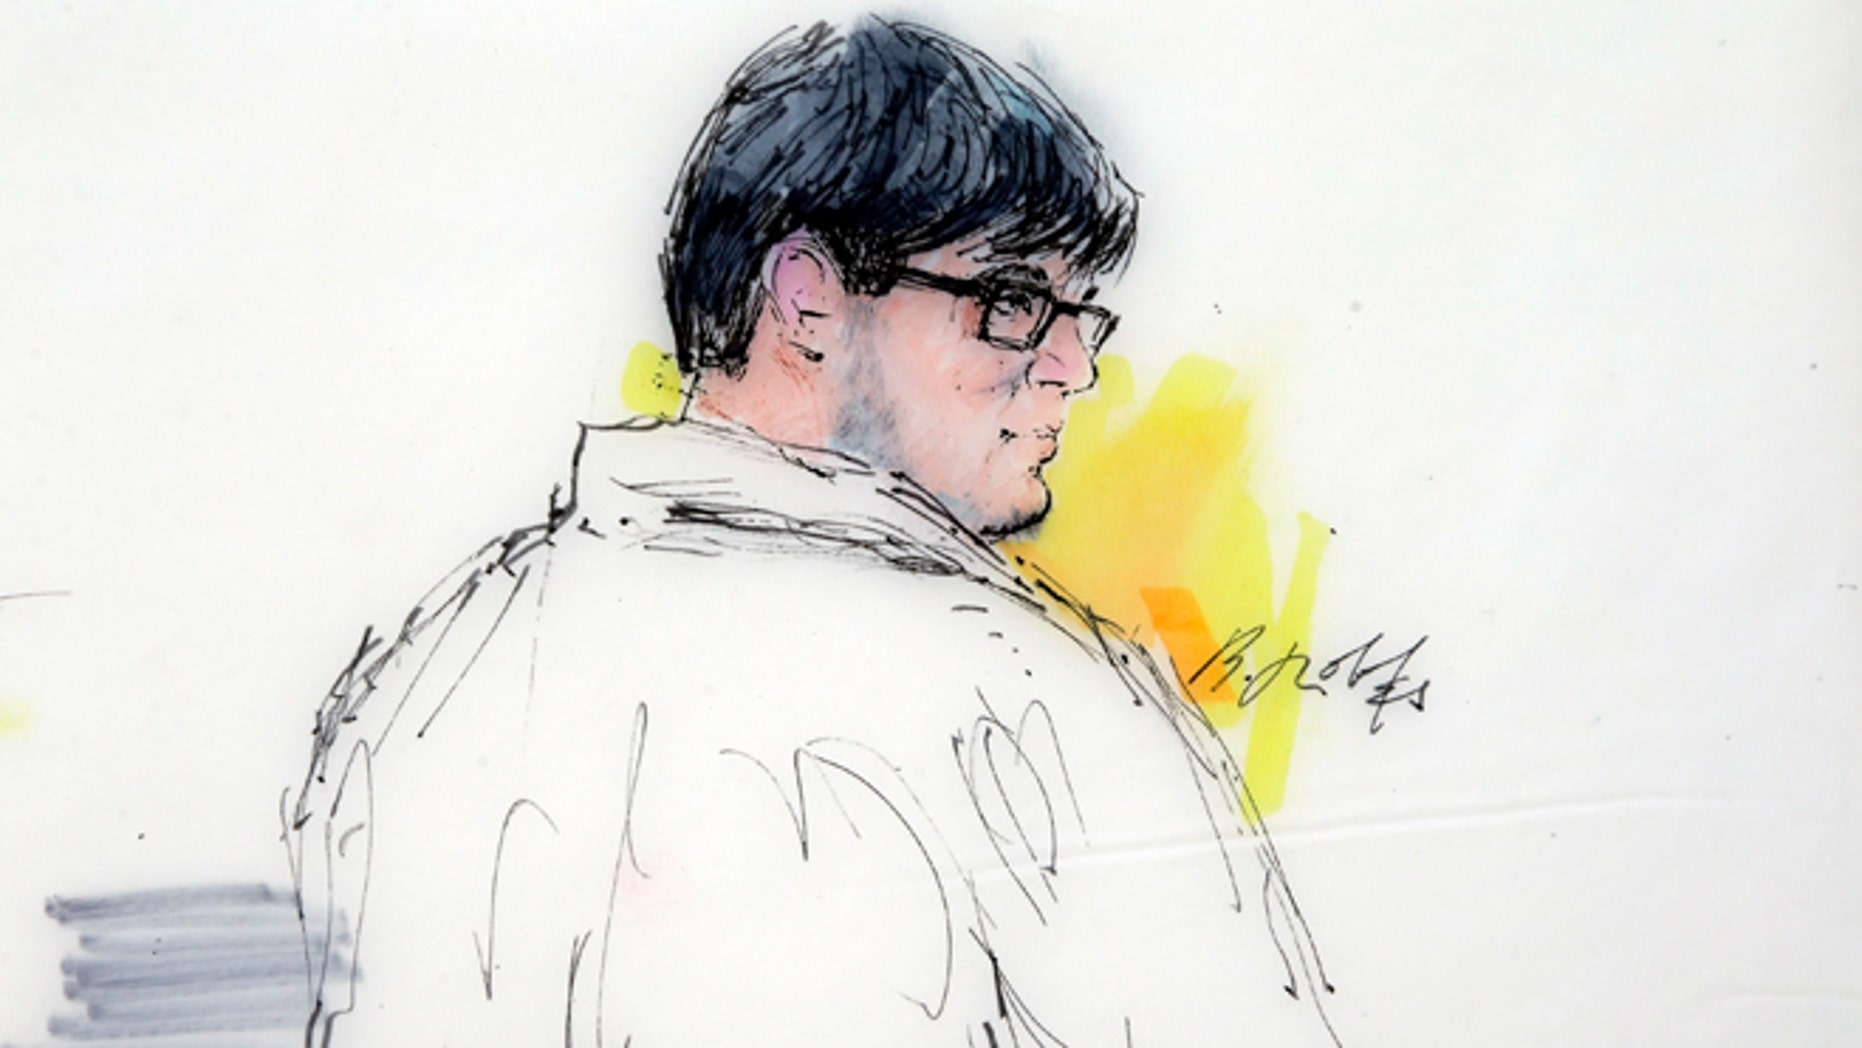 FILE - In this Dec. 21, 2015, courtroom sketch, Enrique Marquez Jr. appears in federal court in Riverside, Calif. Marquez, a friend of one of the shooters in the San Bernardino massacre that killed 14 people, was indicted Wednesday, Dec. 30, on five charges that include conspiring in a pair of previous planned attacks and making false statements when he bought the guns used in this month's shootings, authorities said. (Bill Robles via AP, File)